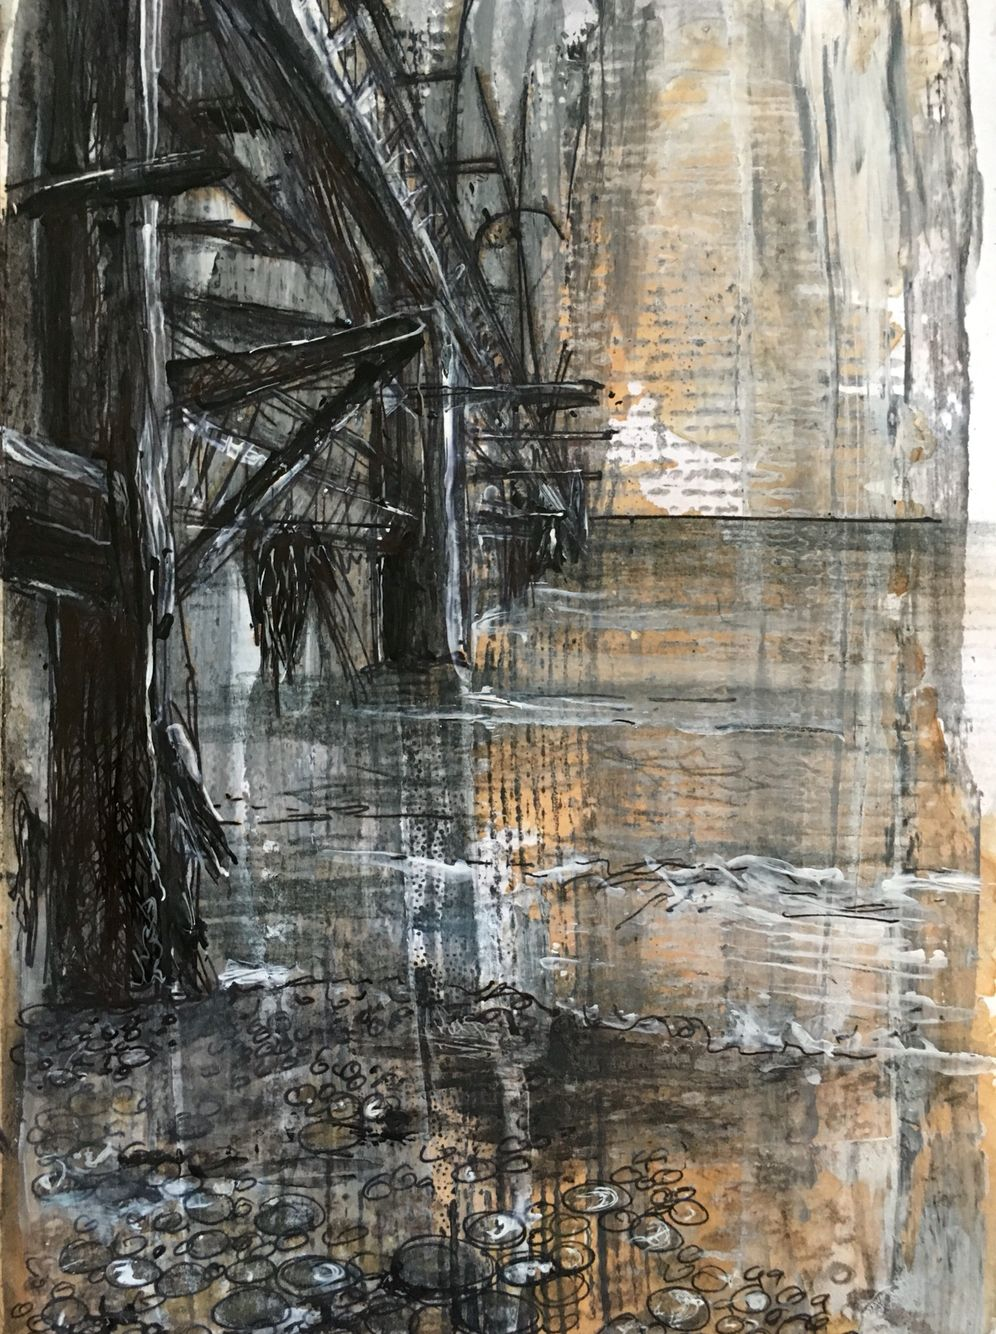 Derelict spaces pier isle of wight mixed media drawing